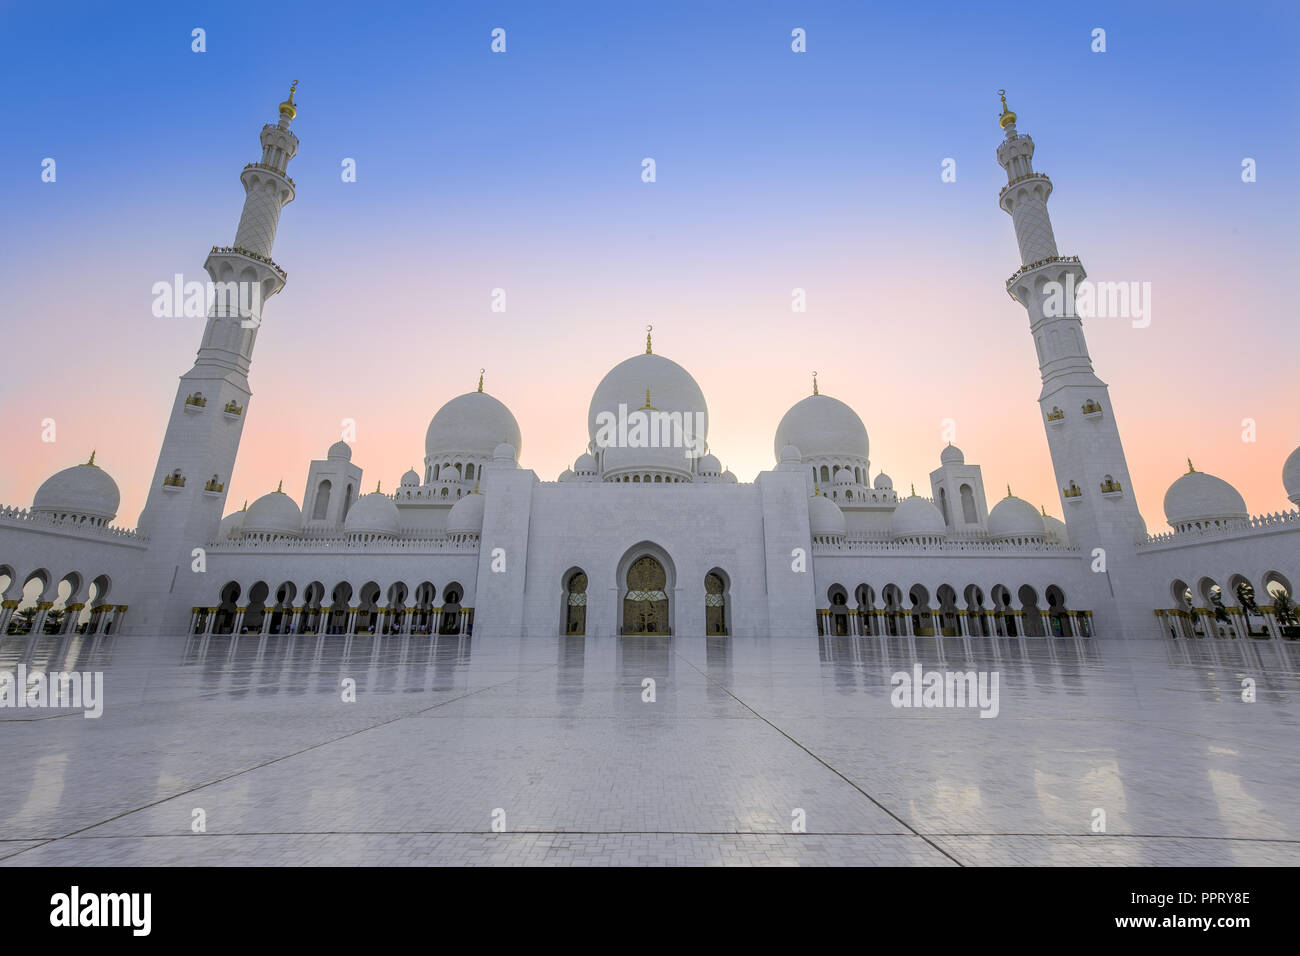 Sheik Zayed Mosqua in Abu Dhabi, UAE - Stock Image